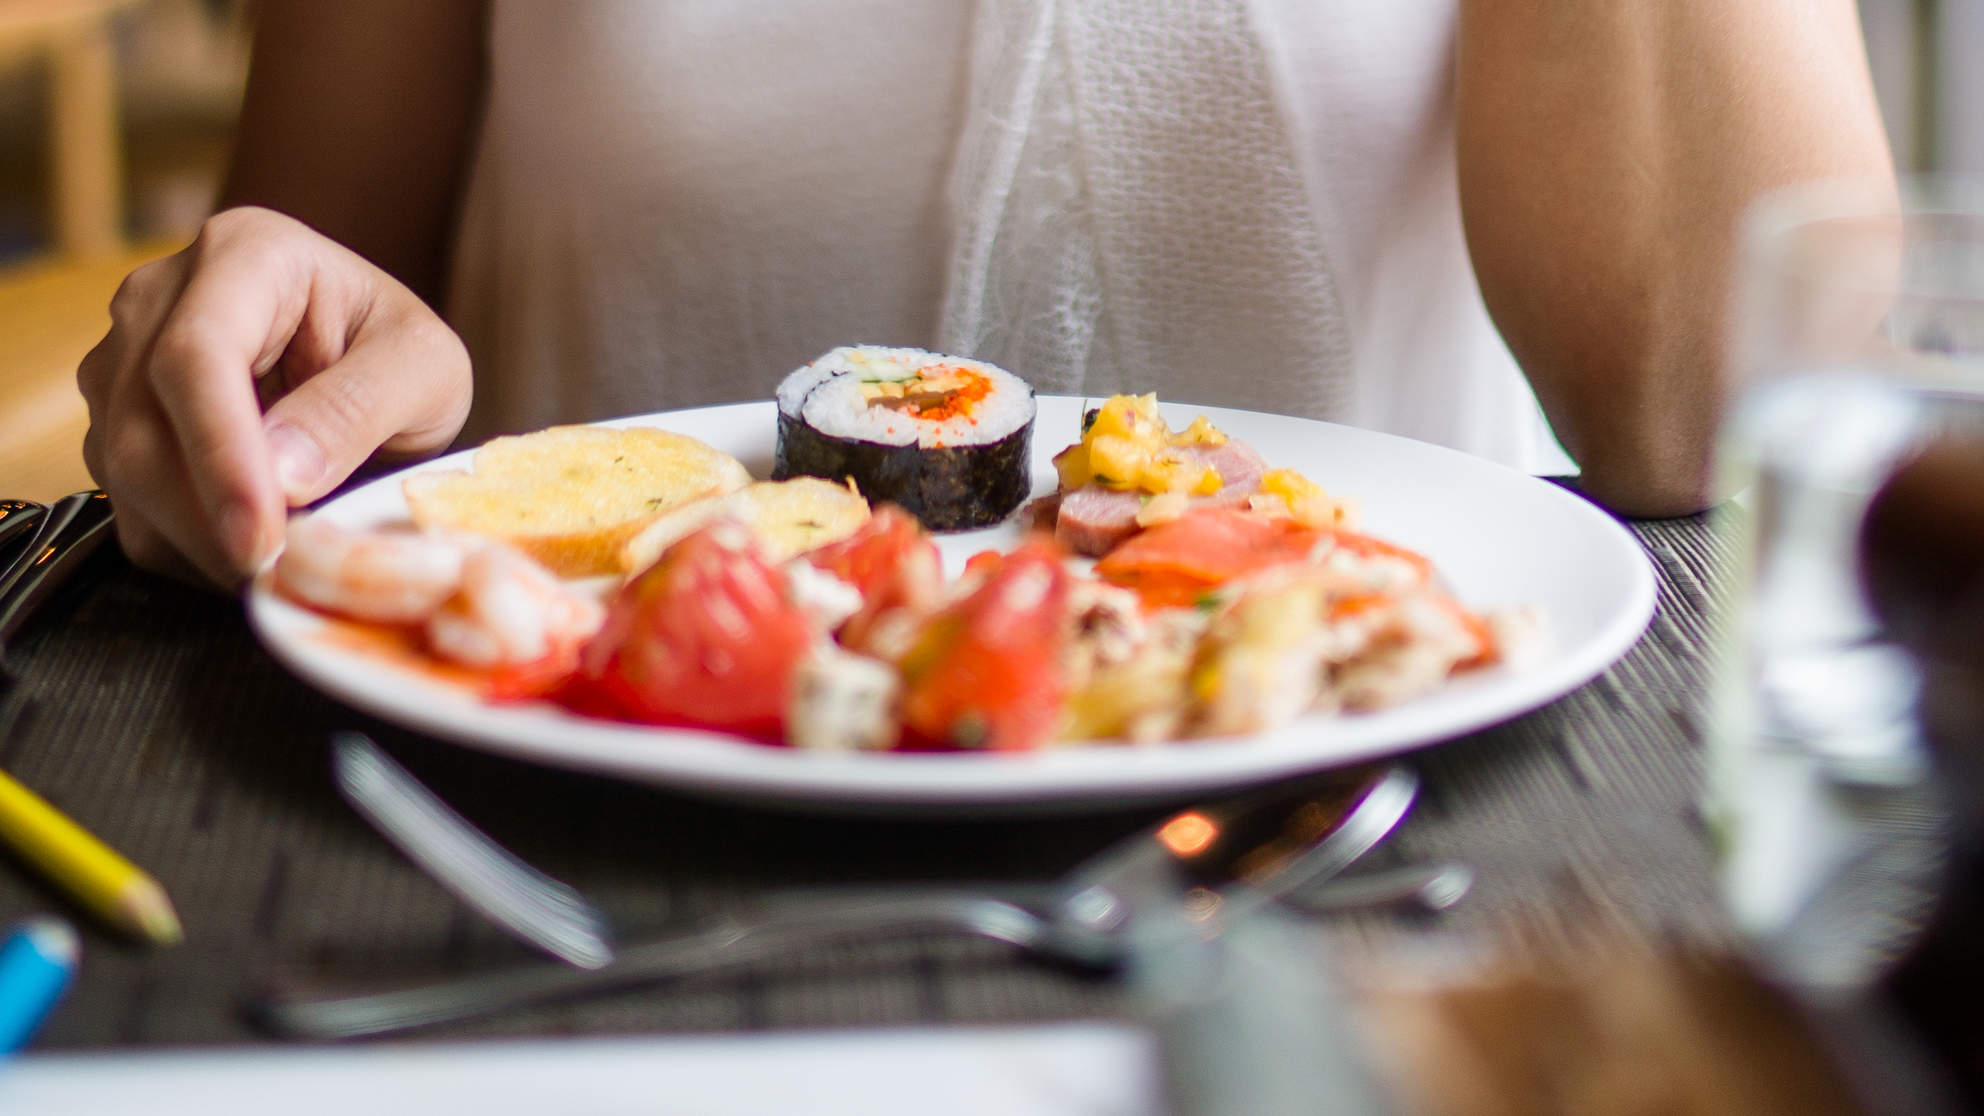 How to Lose Weight Without Actually Eating Less